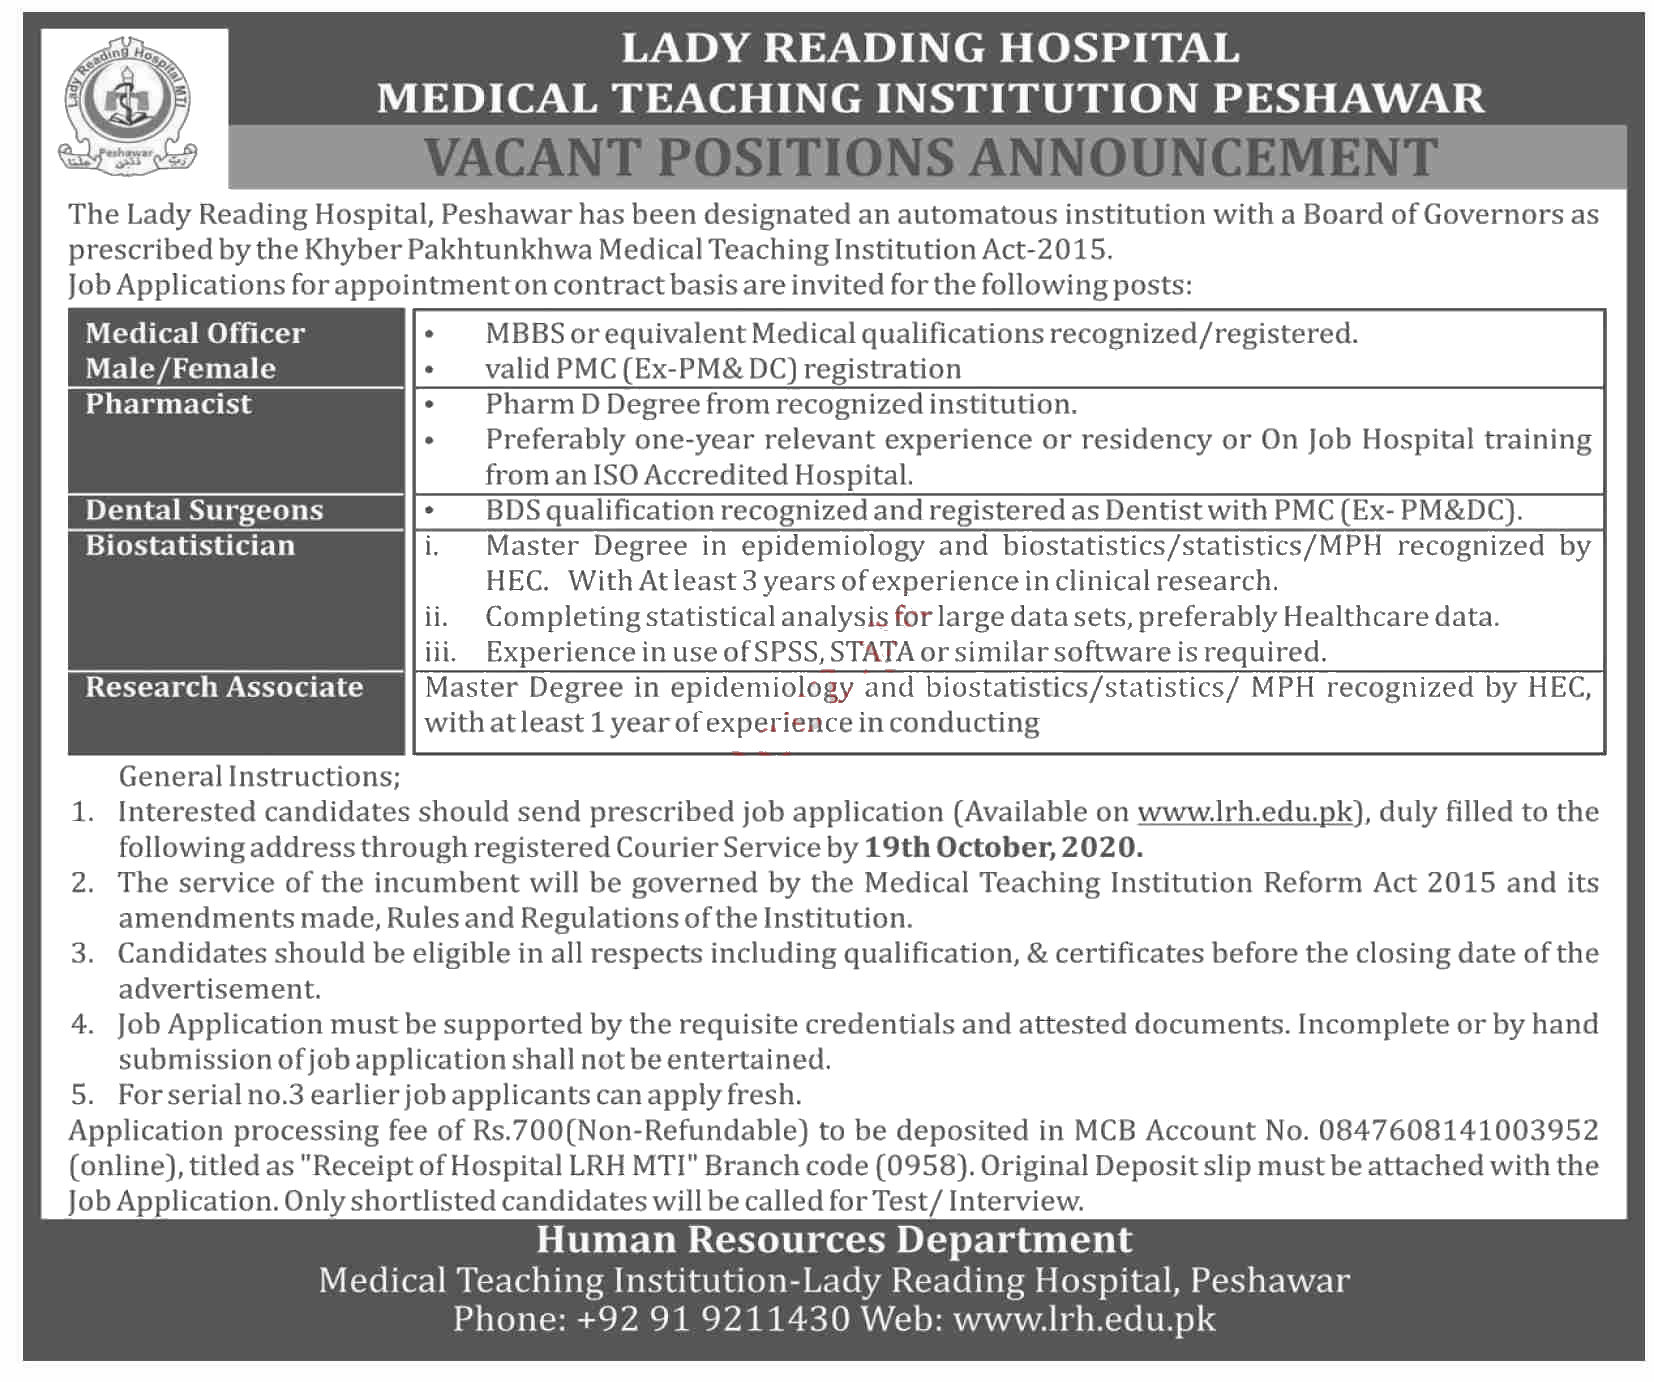 Jobs in Medical Officer & Research Associate in LRH Peshawar 04 October, 2020